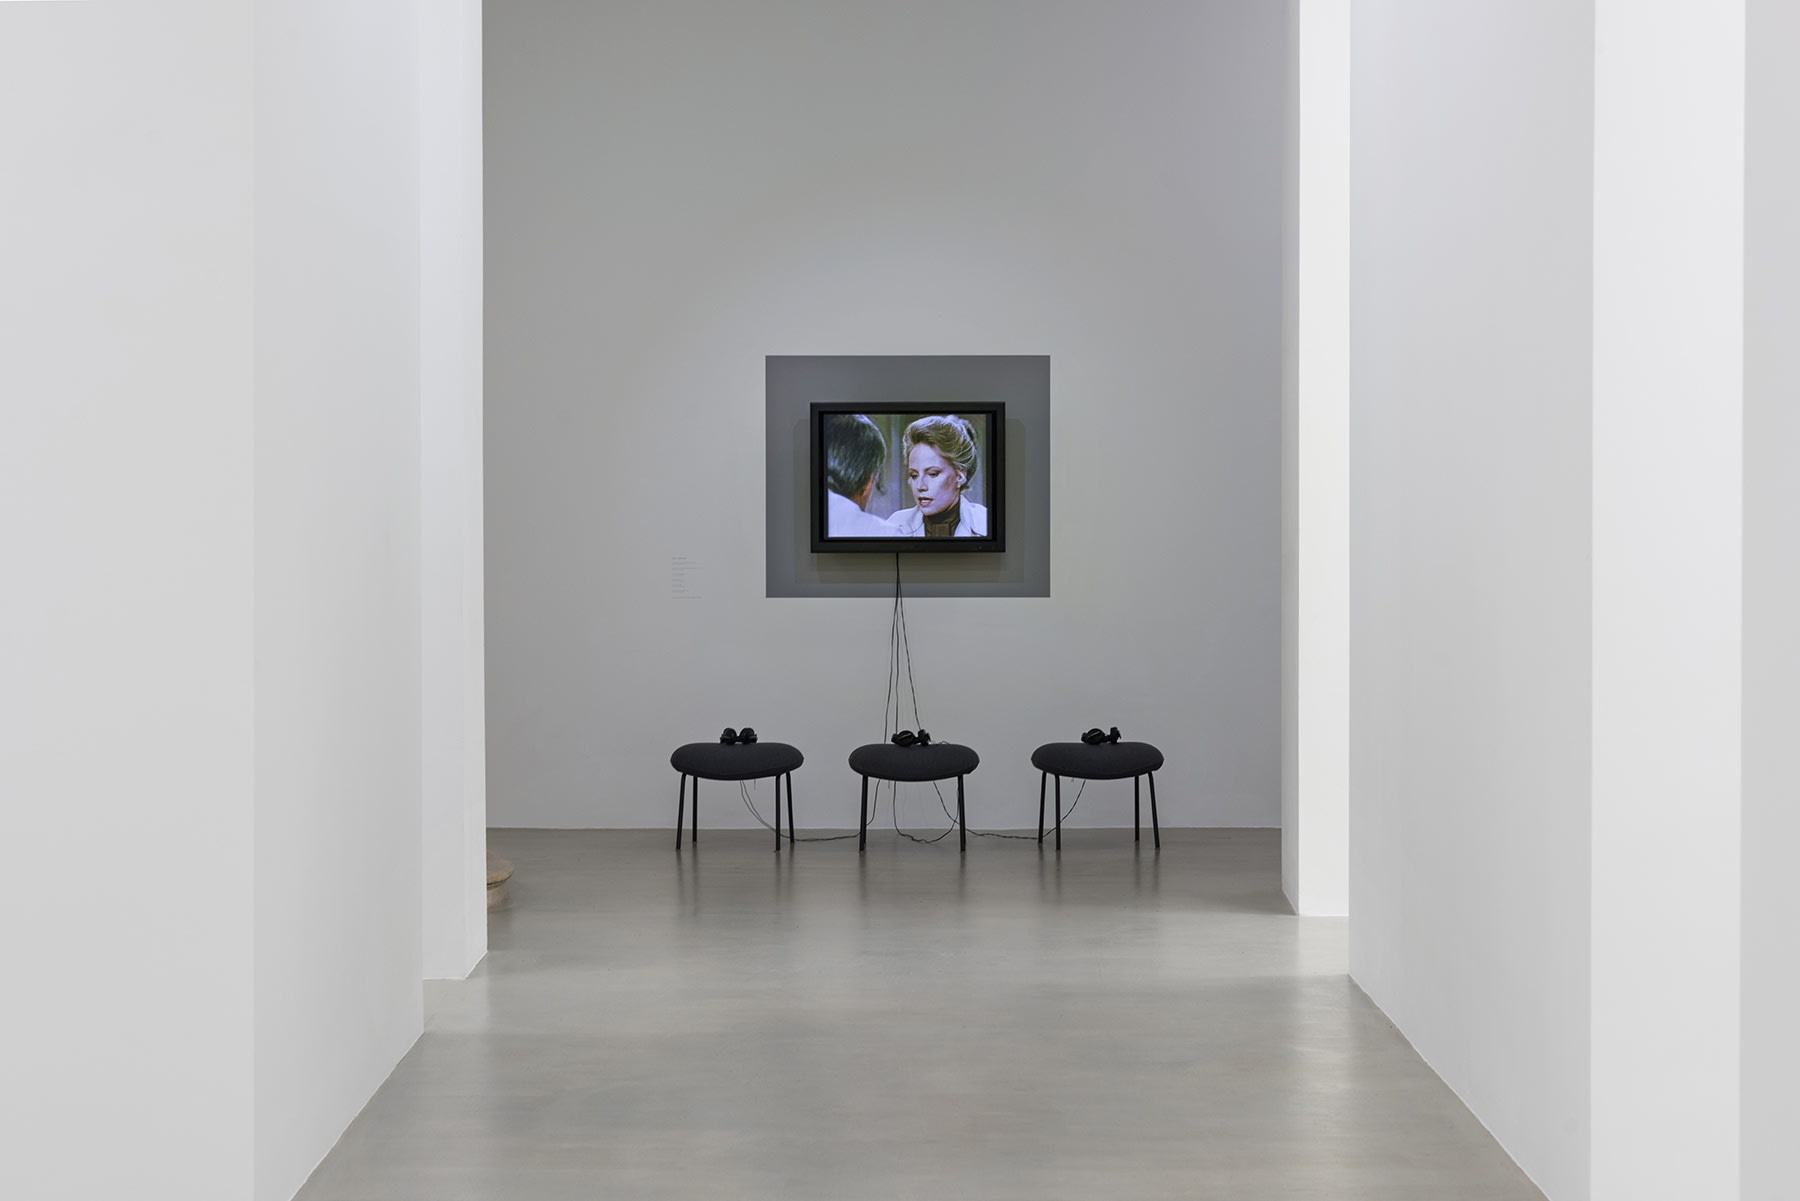 3 stools with headsets sit in front of a flatscreen monitor displaying a woman and a man conversing.